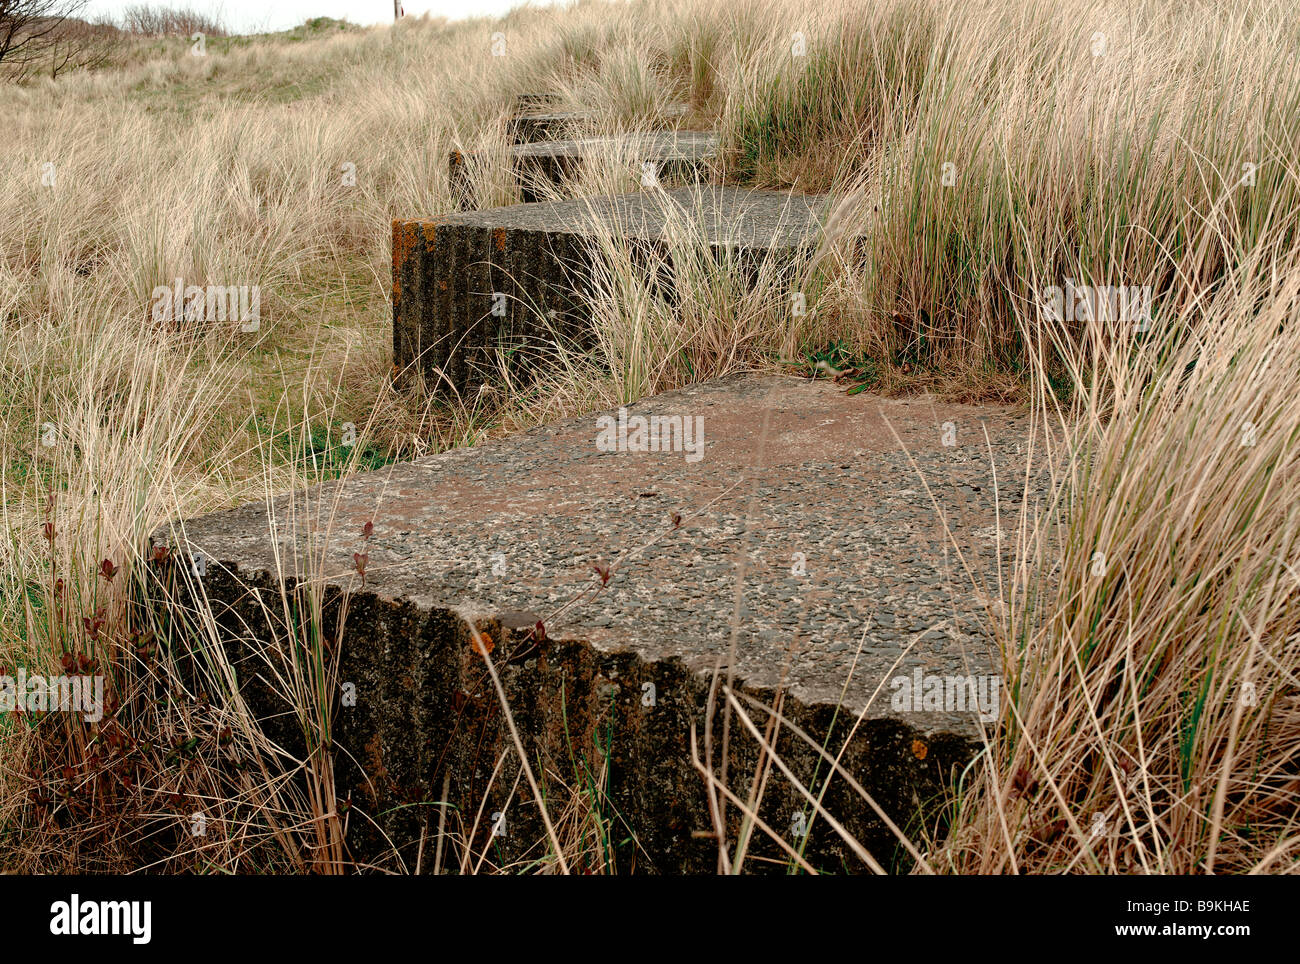 Wartime anti-tank defenses in dunes at Alnmouth - Stock Image